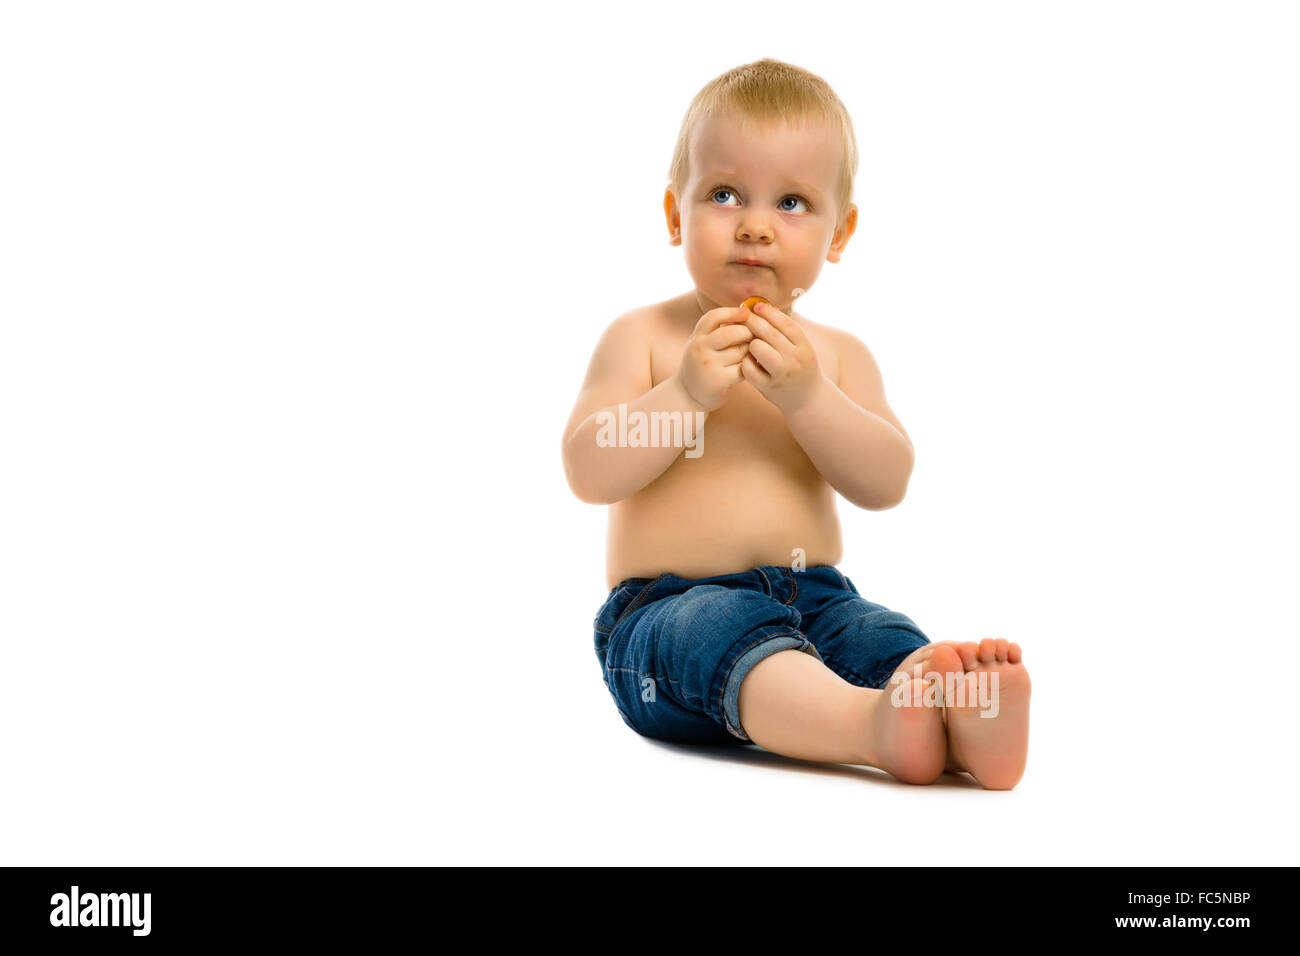 baby sitting on a white floor - Stock Image